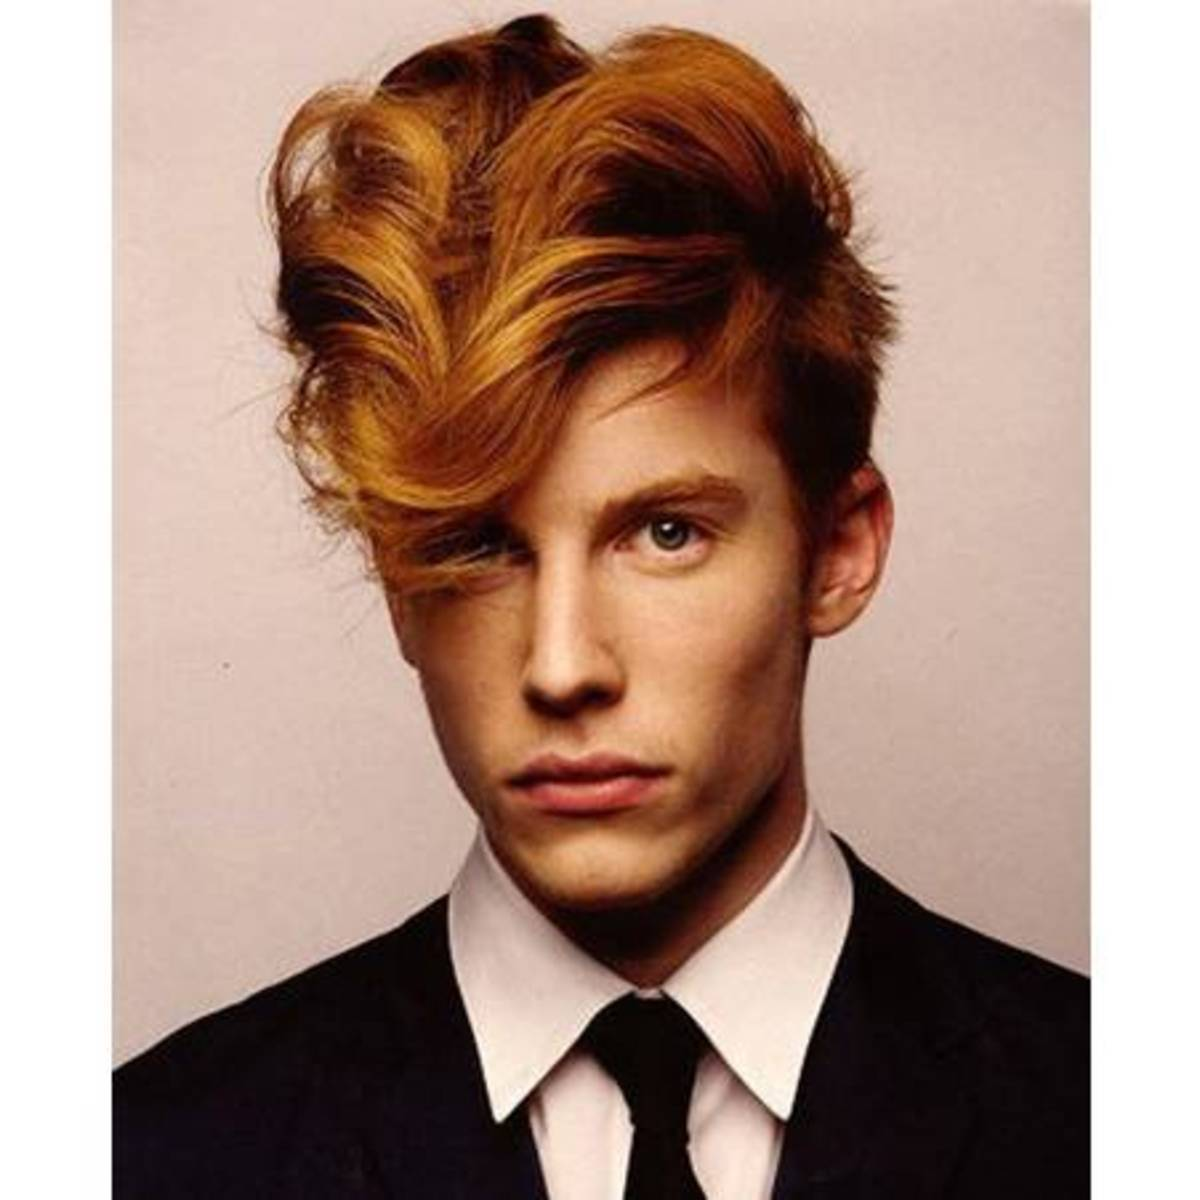 Coupe-de-cheveux-homme-mode-hiver-2015_reference2